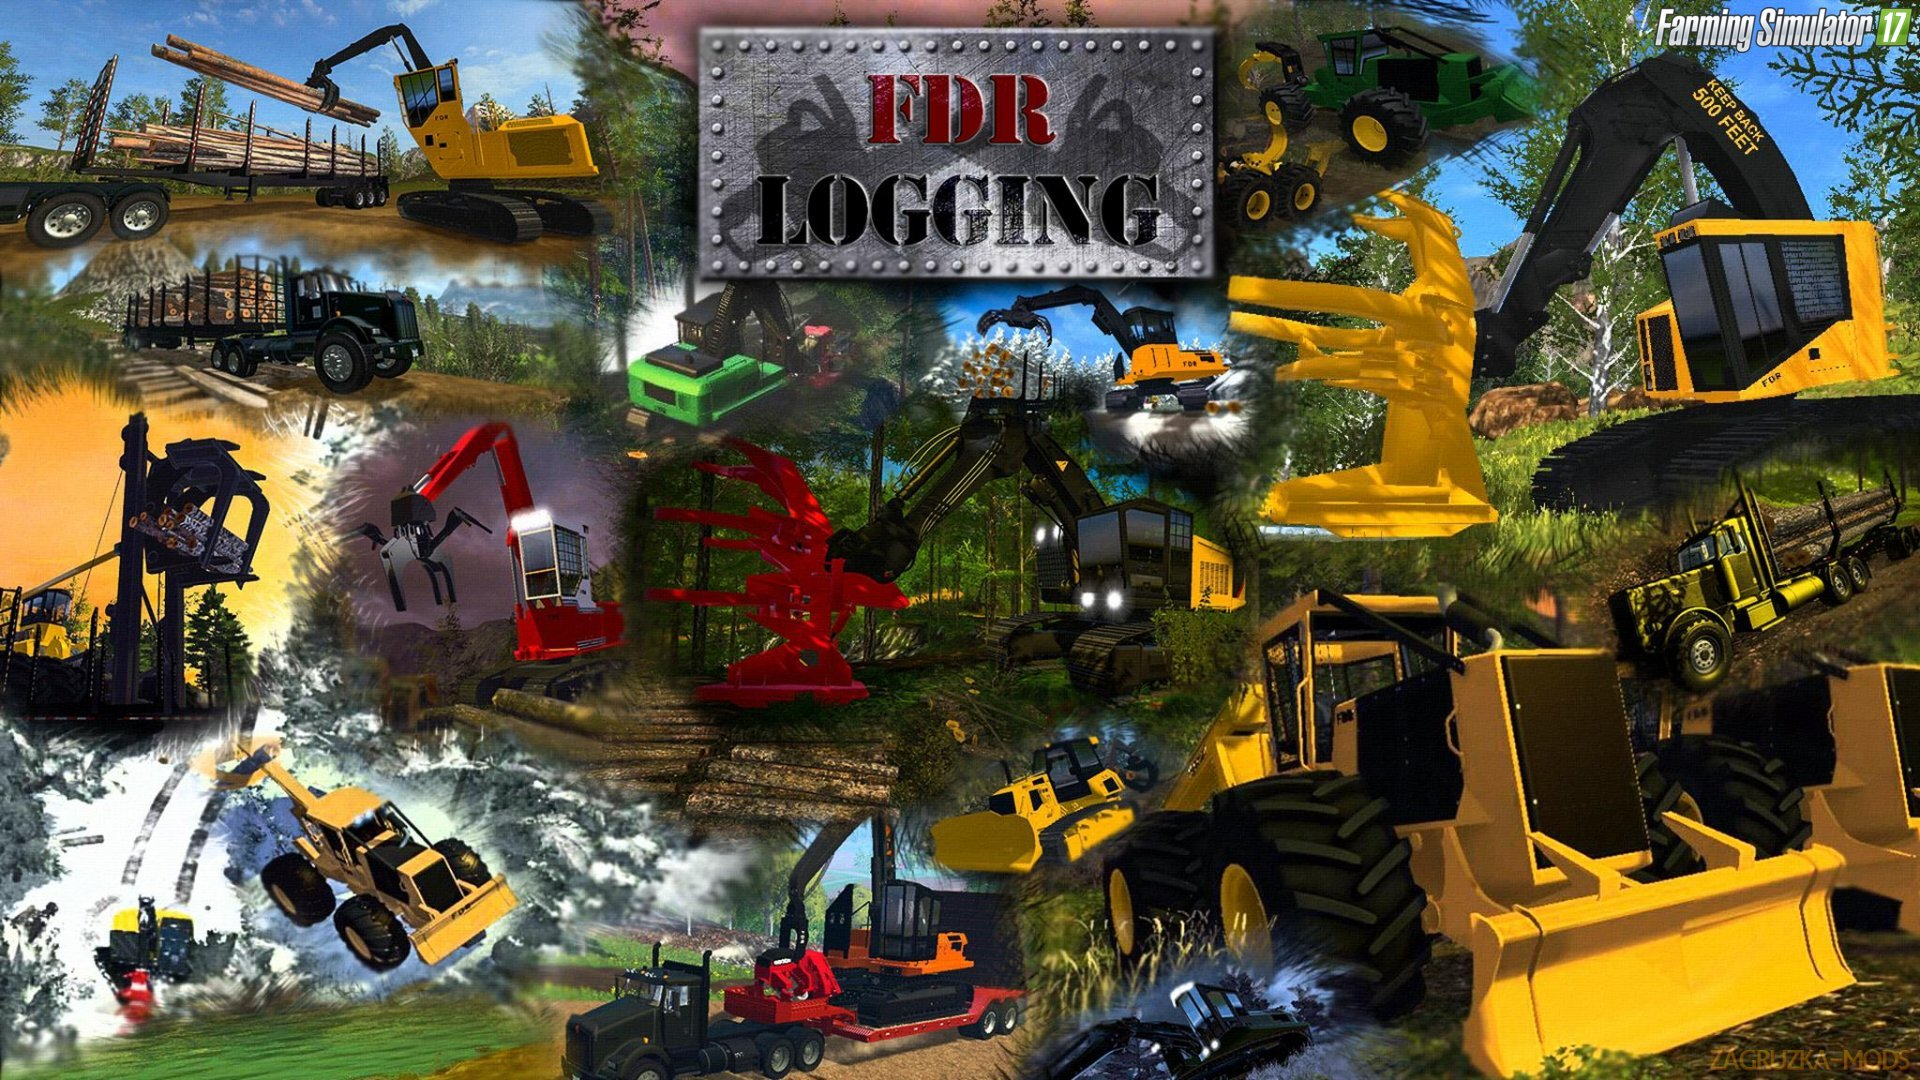 Forestry Equipment v7.0 by FDR Logging for FS 17